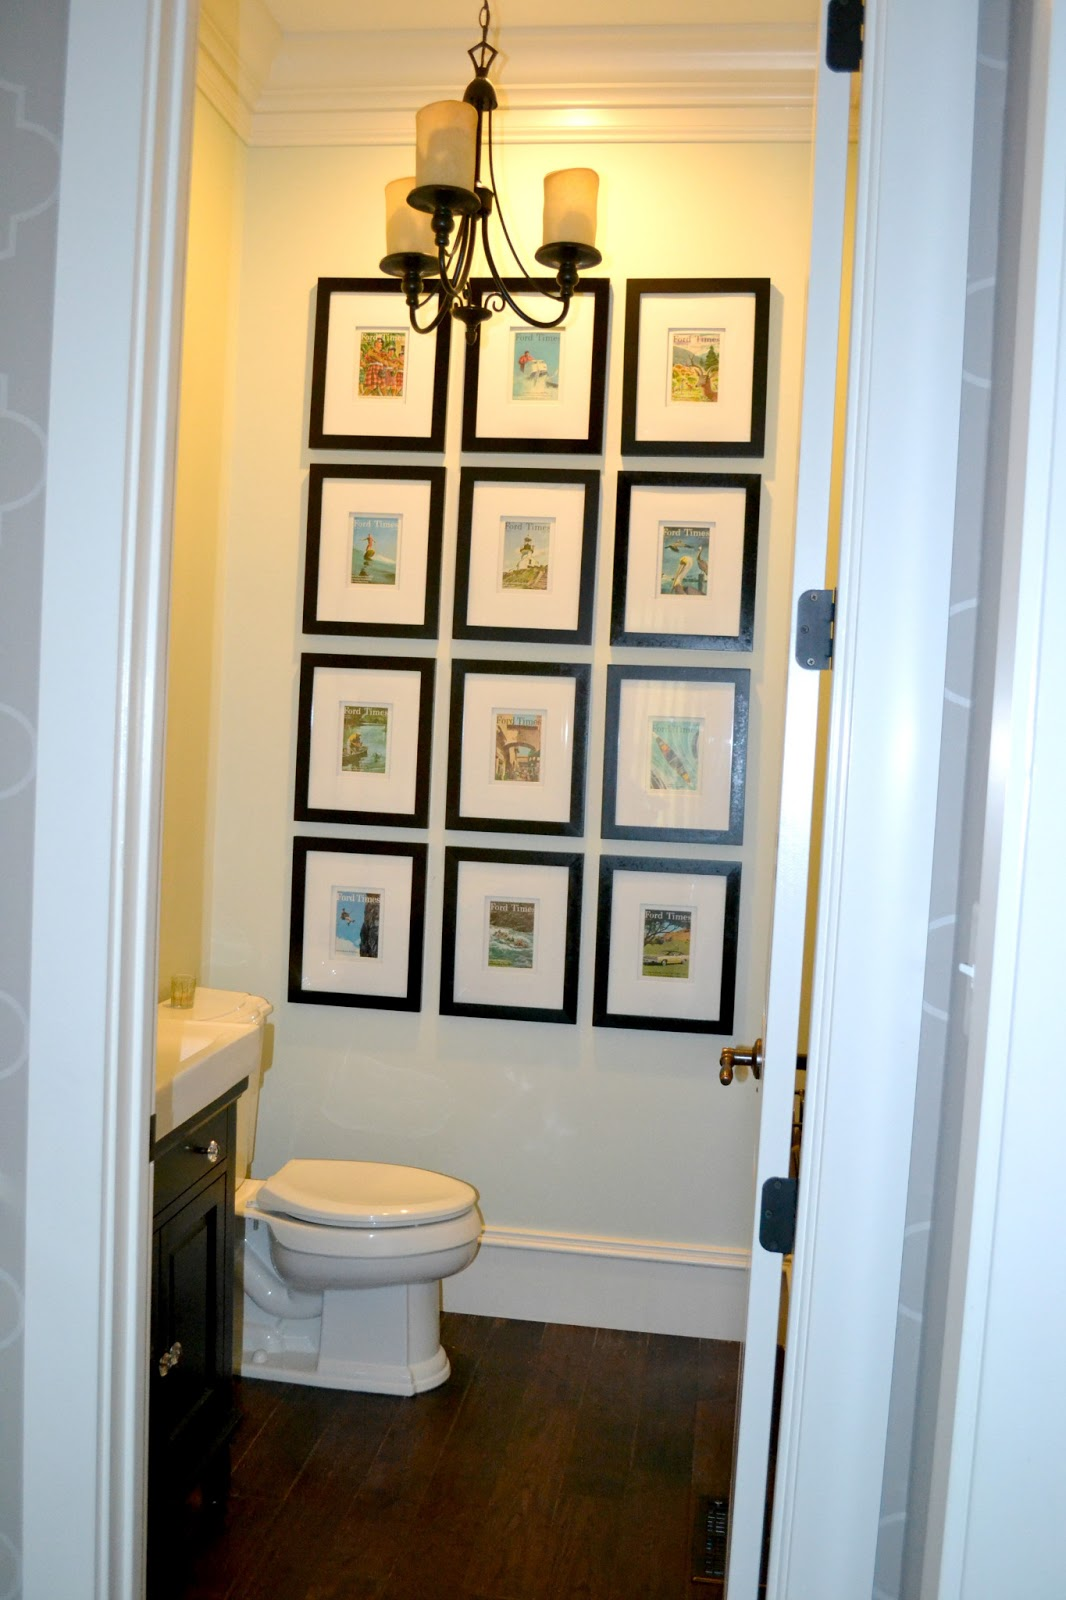 Great Ideas For Small Bathrooms Decor You Adore Wall Art How To Make A Big Impact With A